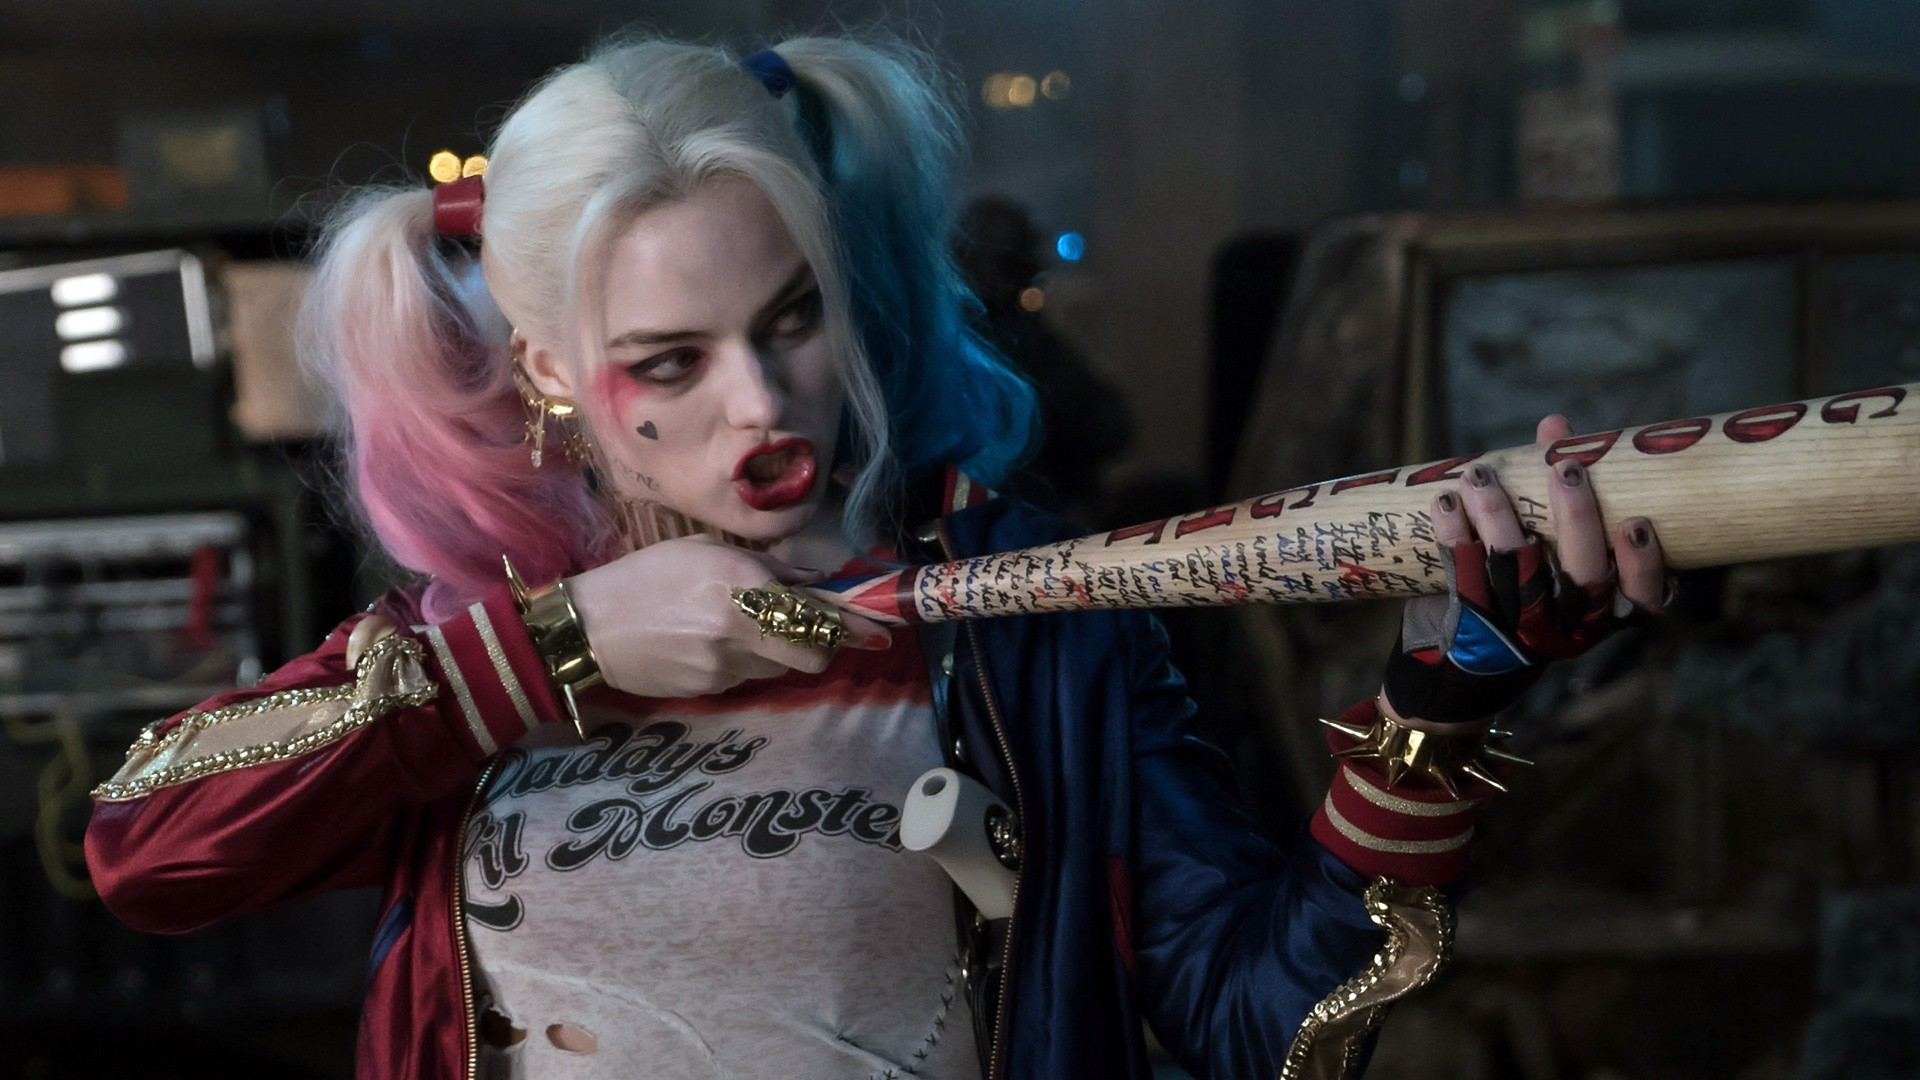 Harley-Quinn-Suicide-Squad-Movie-HD-Images.jpg (1920×1080) | Scrawl Project  | Pinterest | Movie